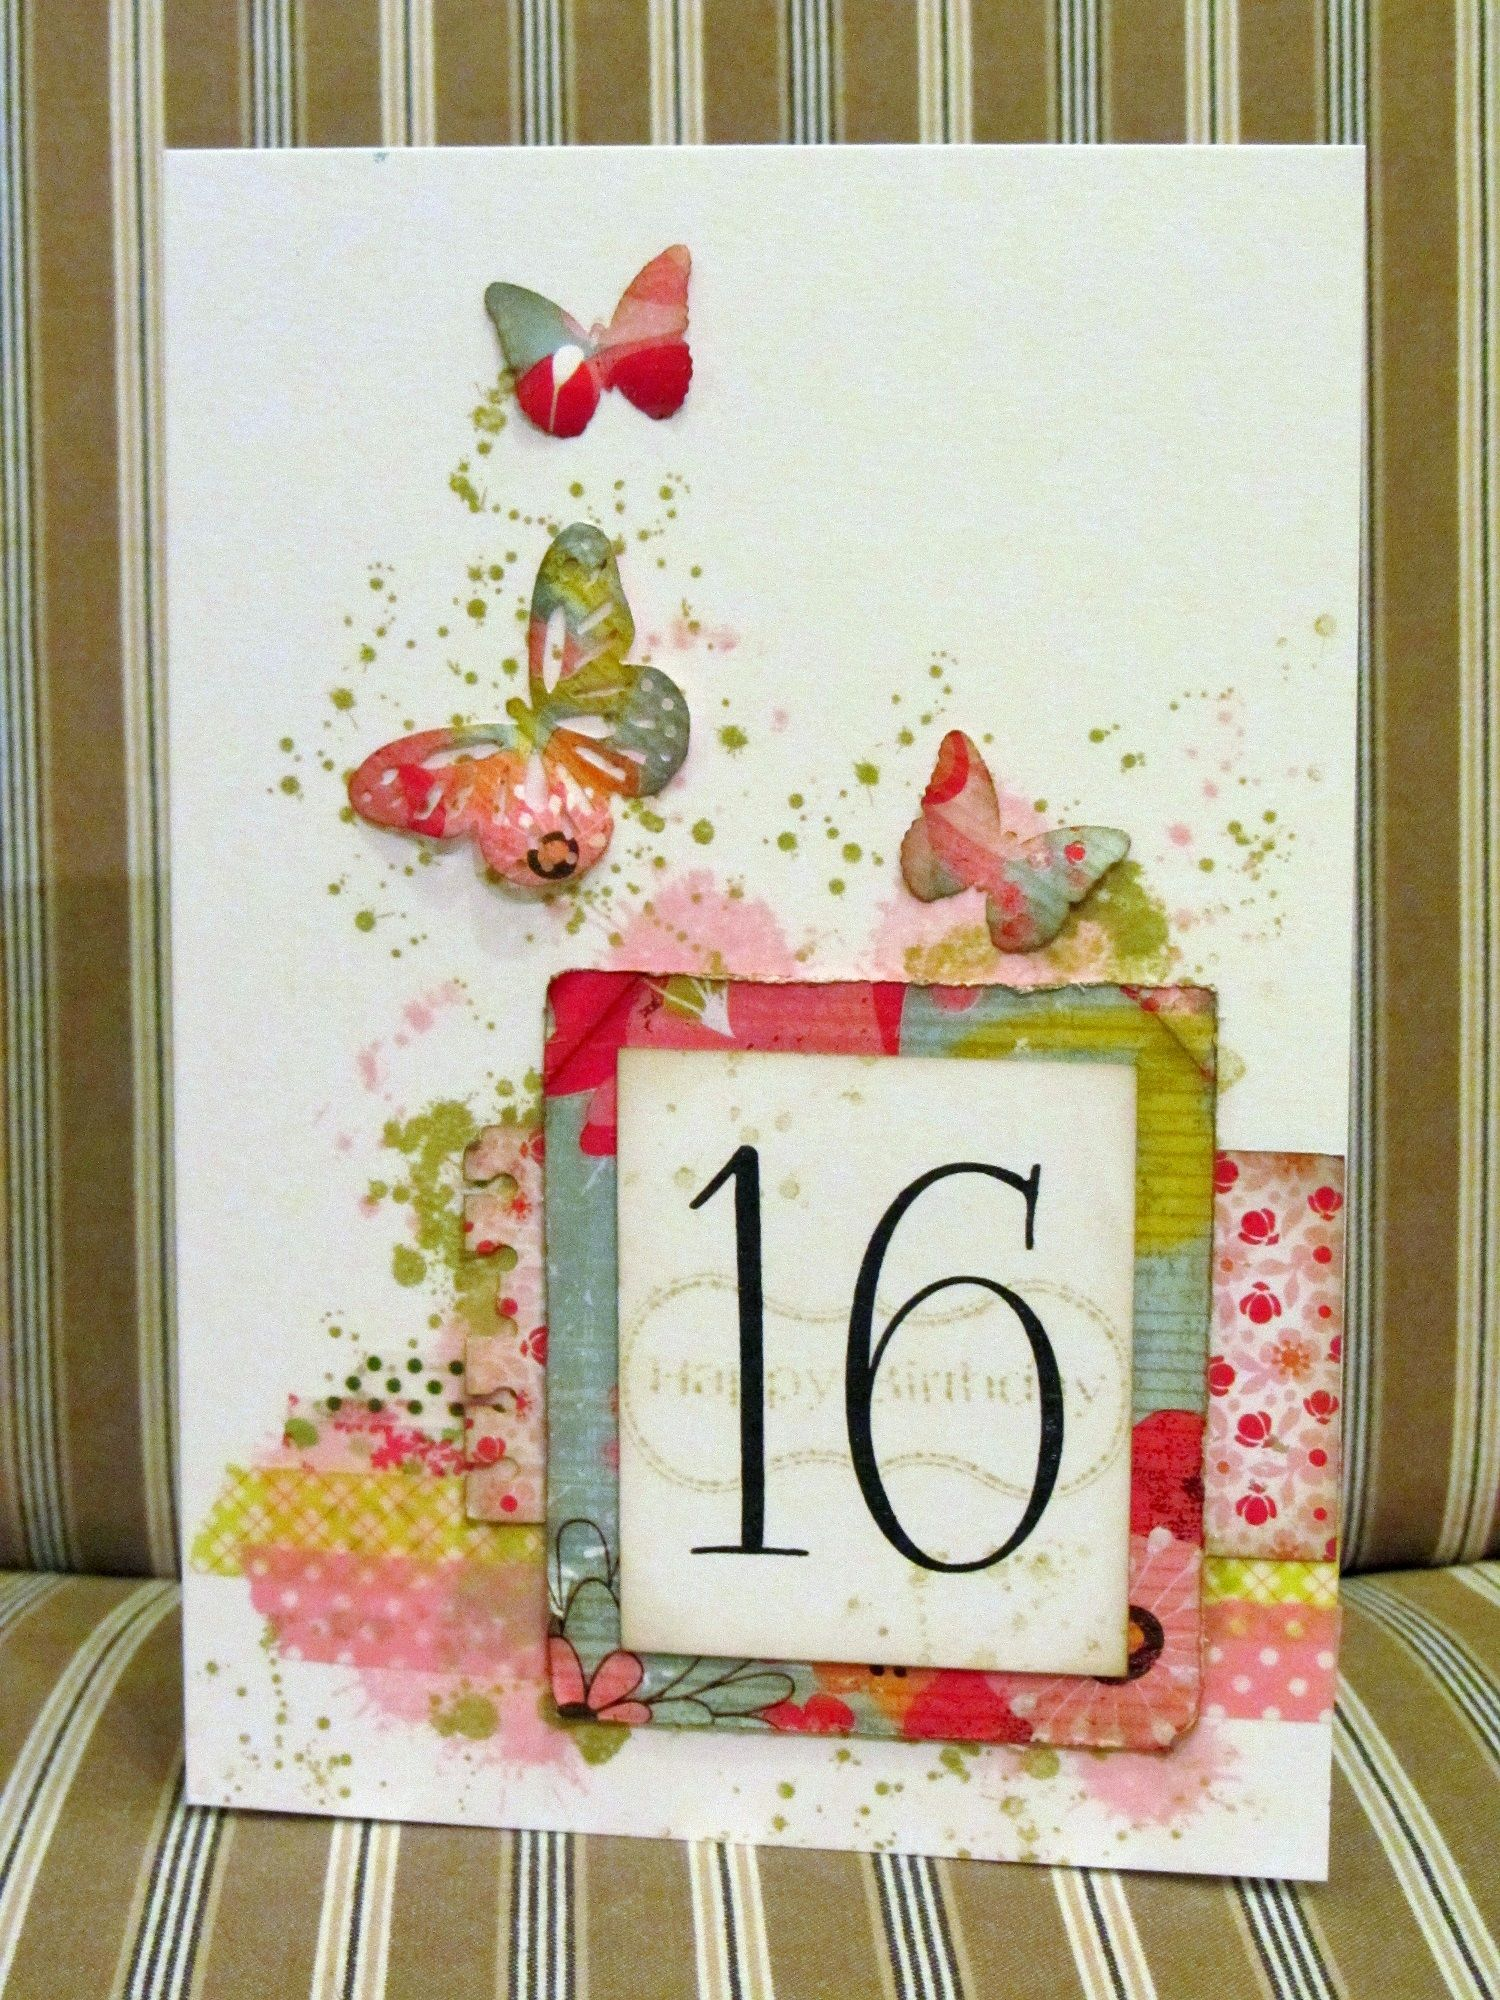 My Daughters 16th Birthday Card Made With Paper Scraps Washi Tape